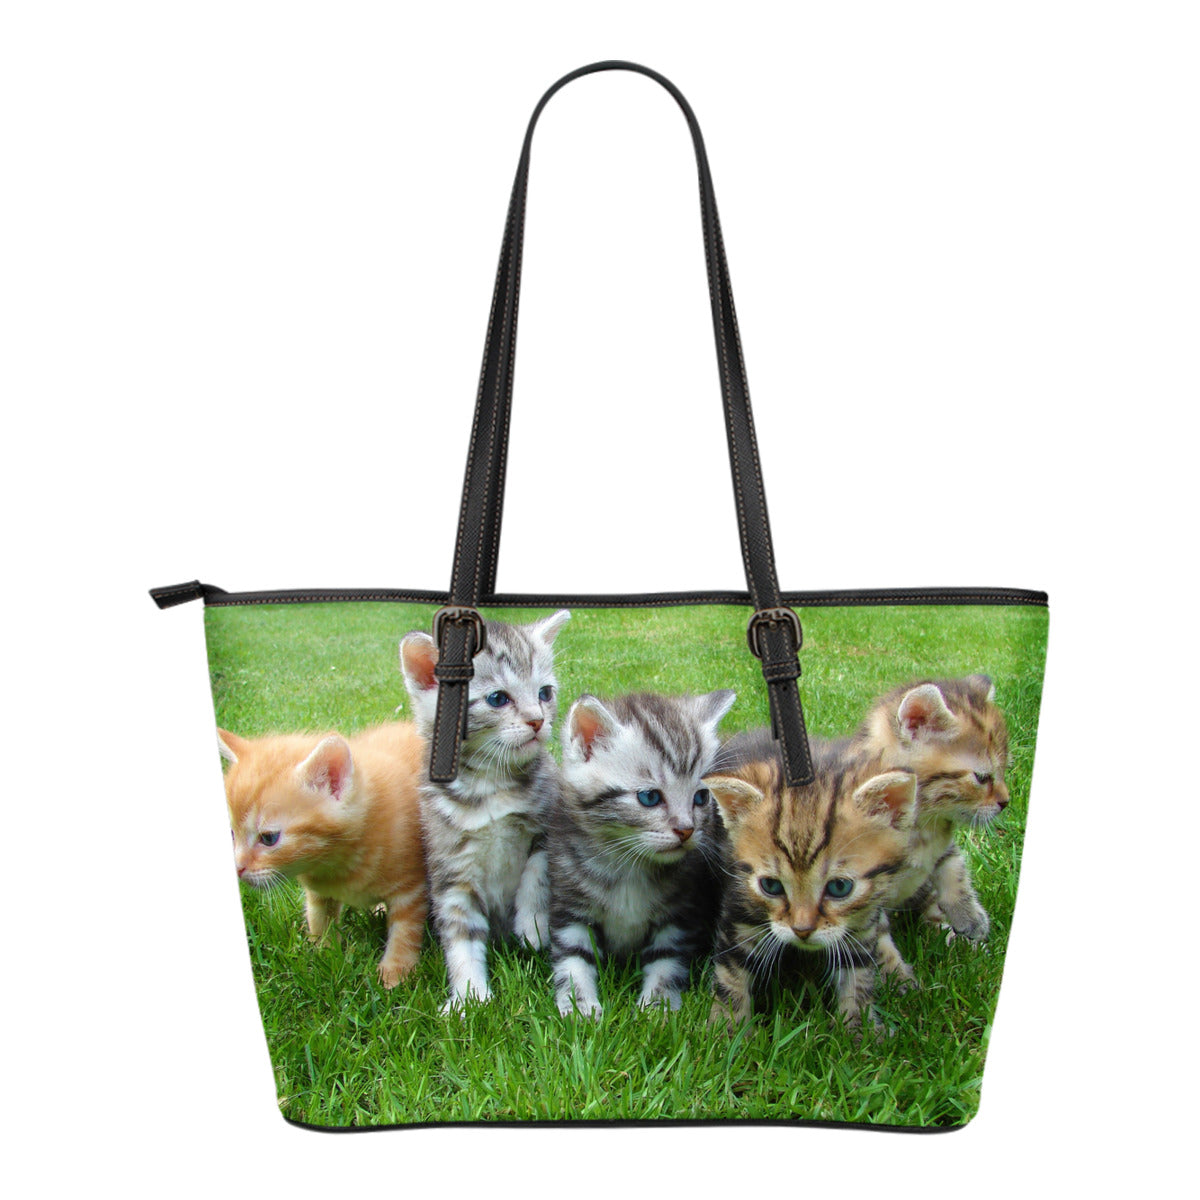 Cat Tote Bag - Small Leather Tote